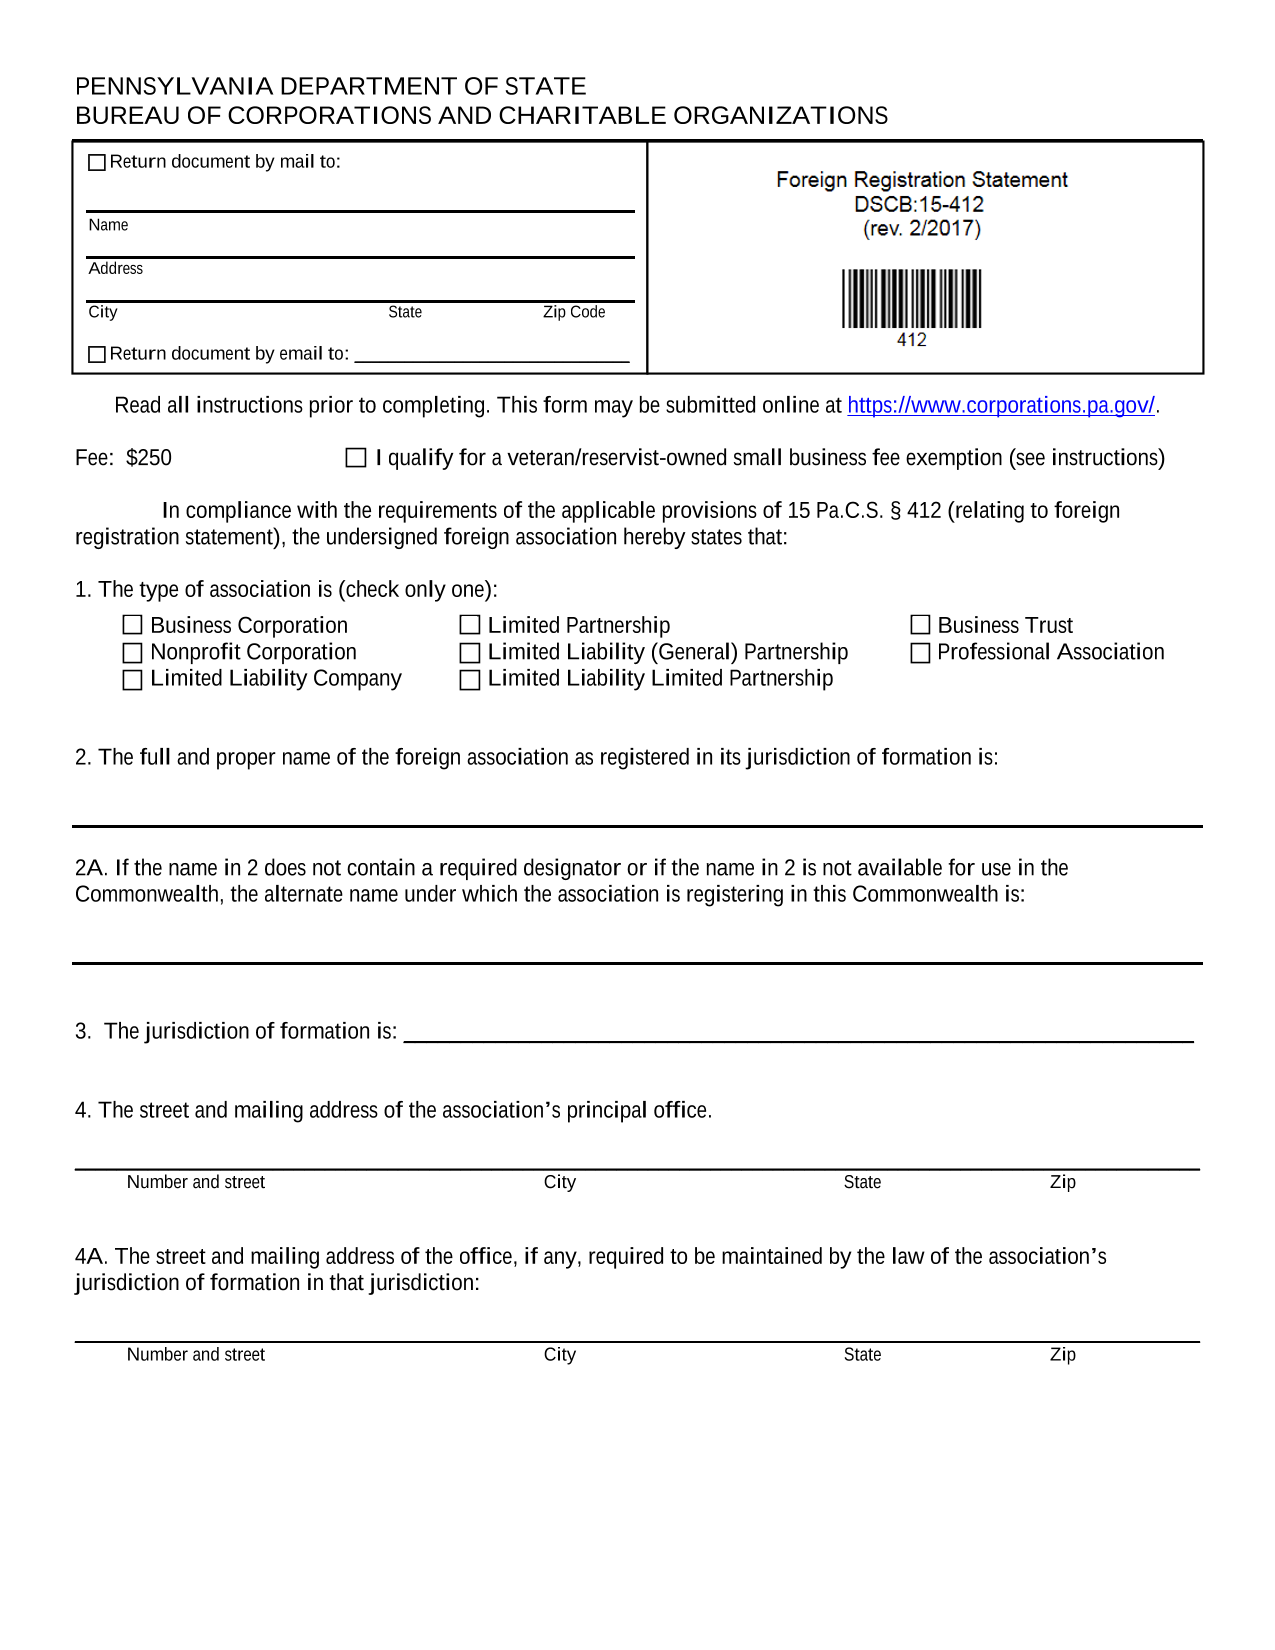 pennsylvania-foreign-corporation-application-for-certificate-of-authority